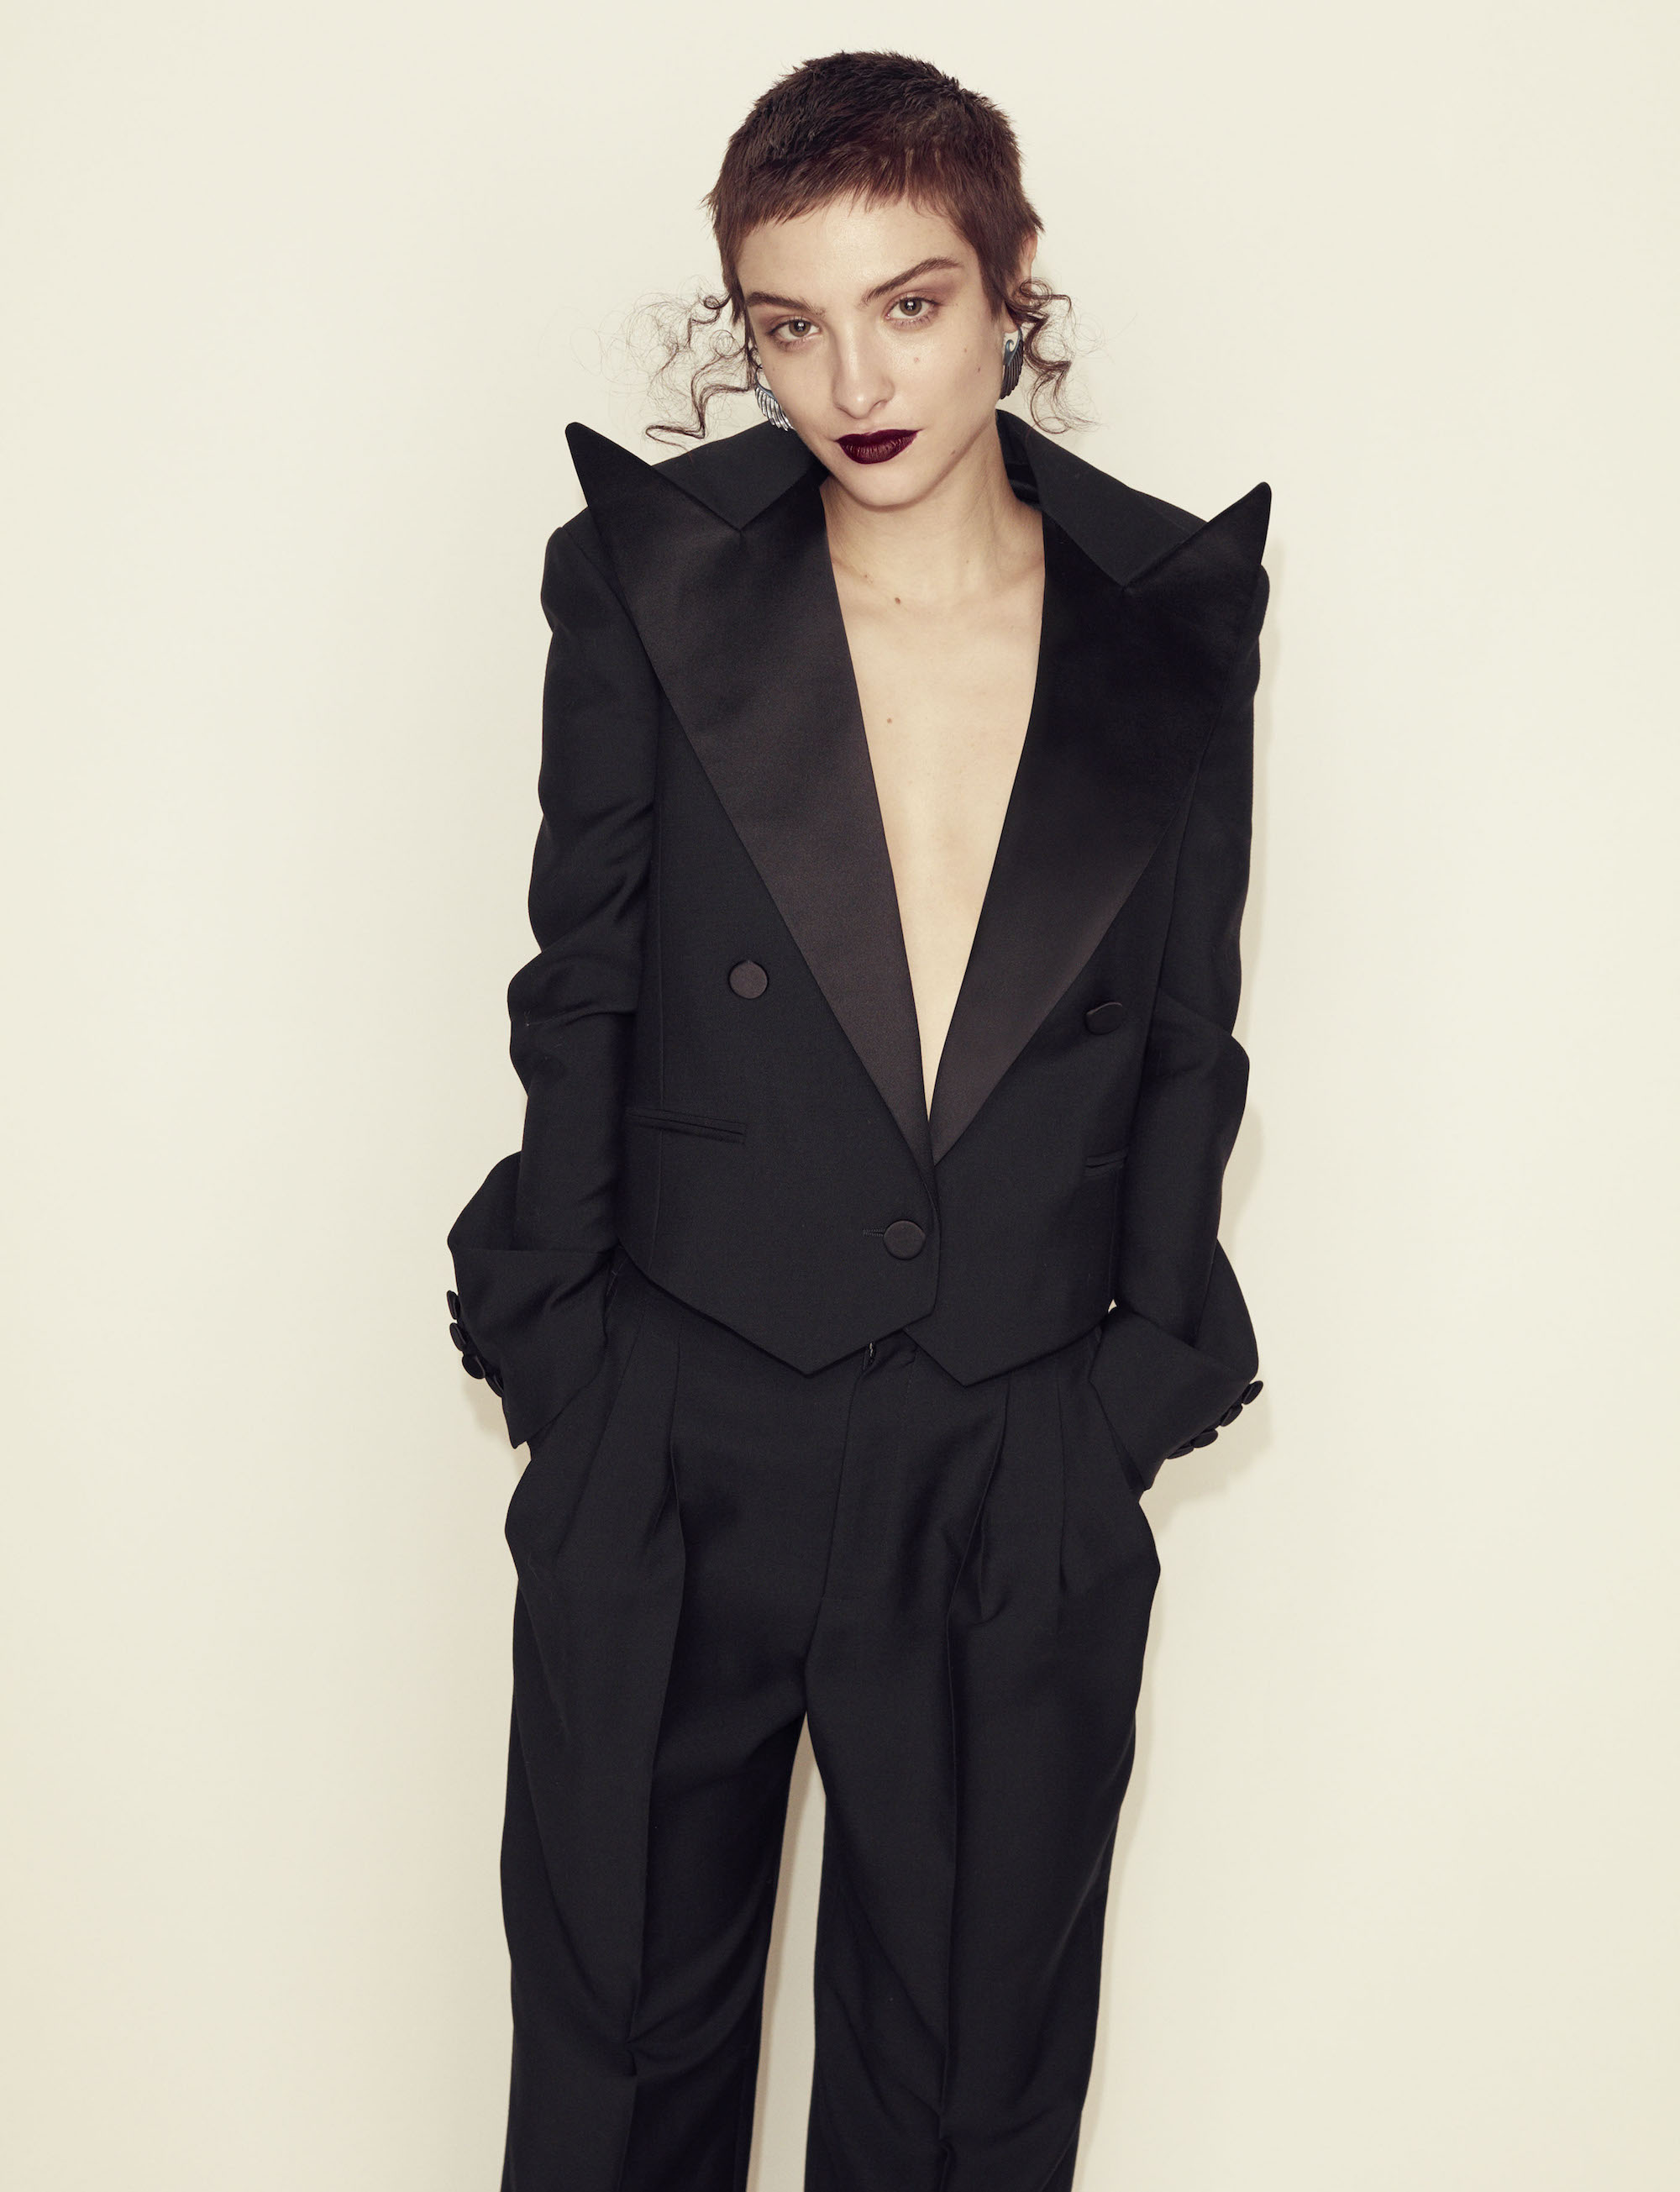 Metal Guru fashion editorial tuxedo